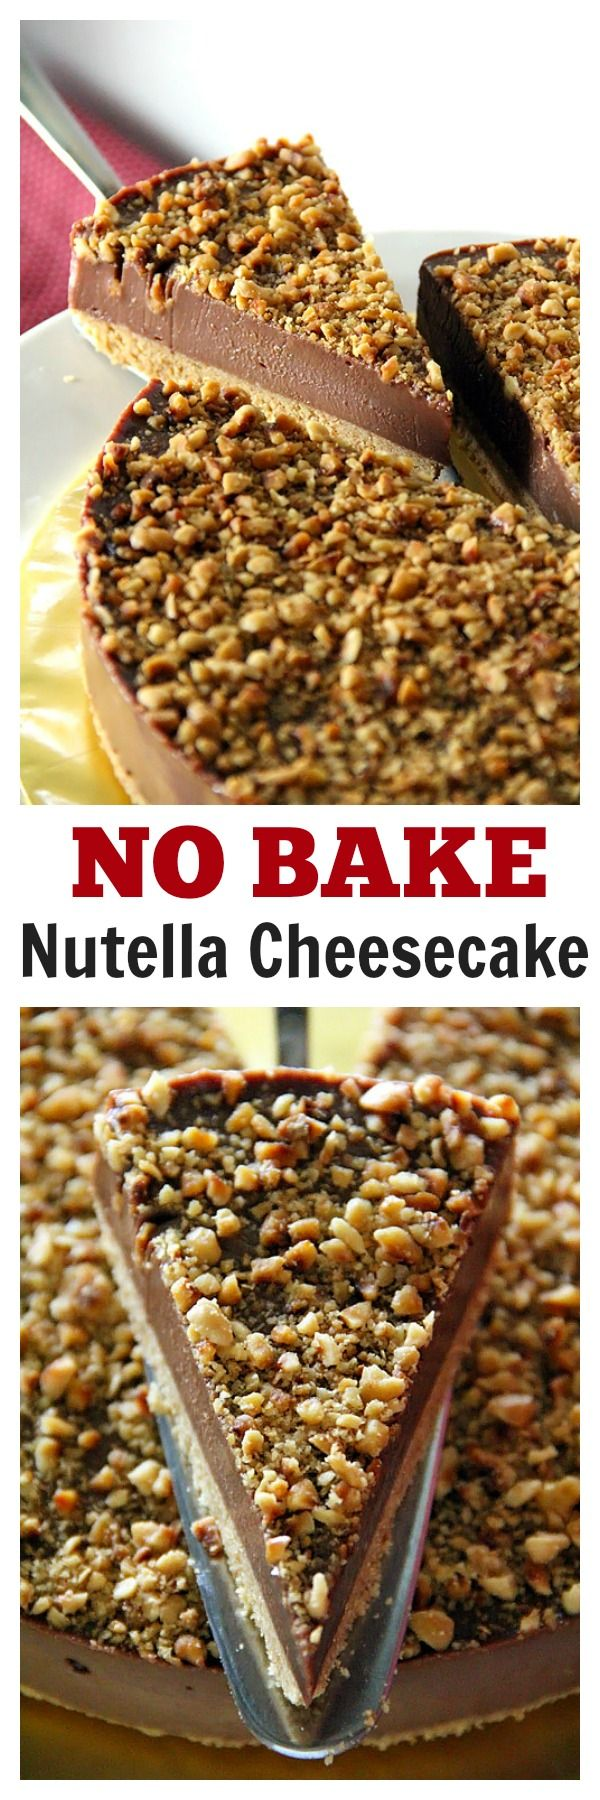 outlet Cheesecake  Nutella online   Nutella Recipe usa fashion and Cheesecake Nutella Cheesecake